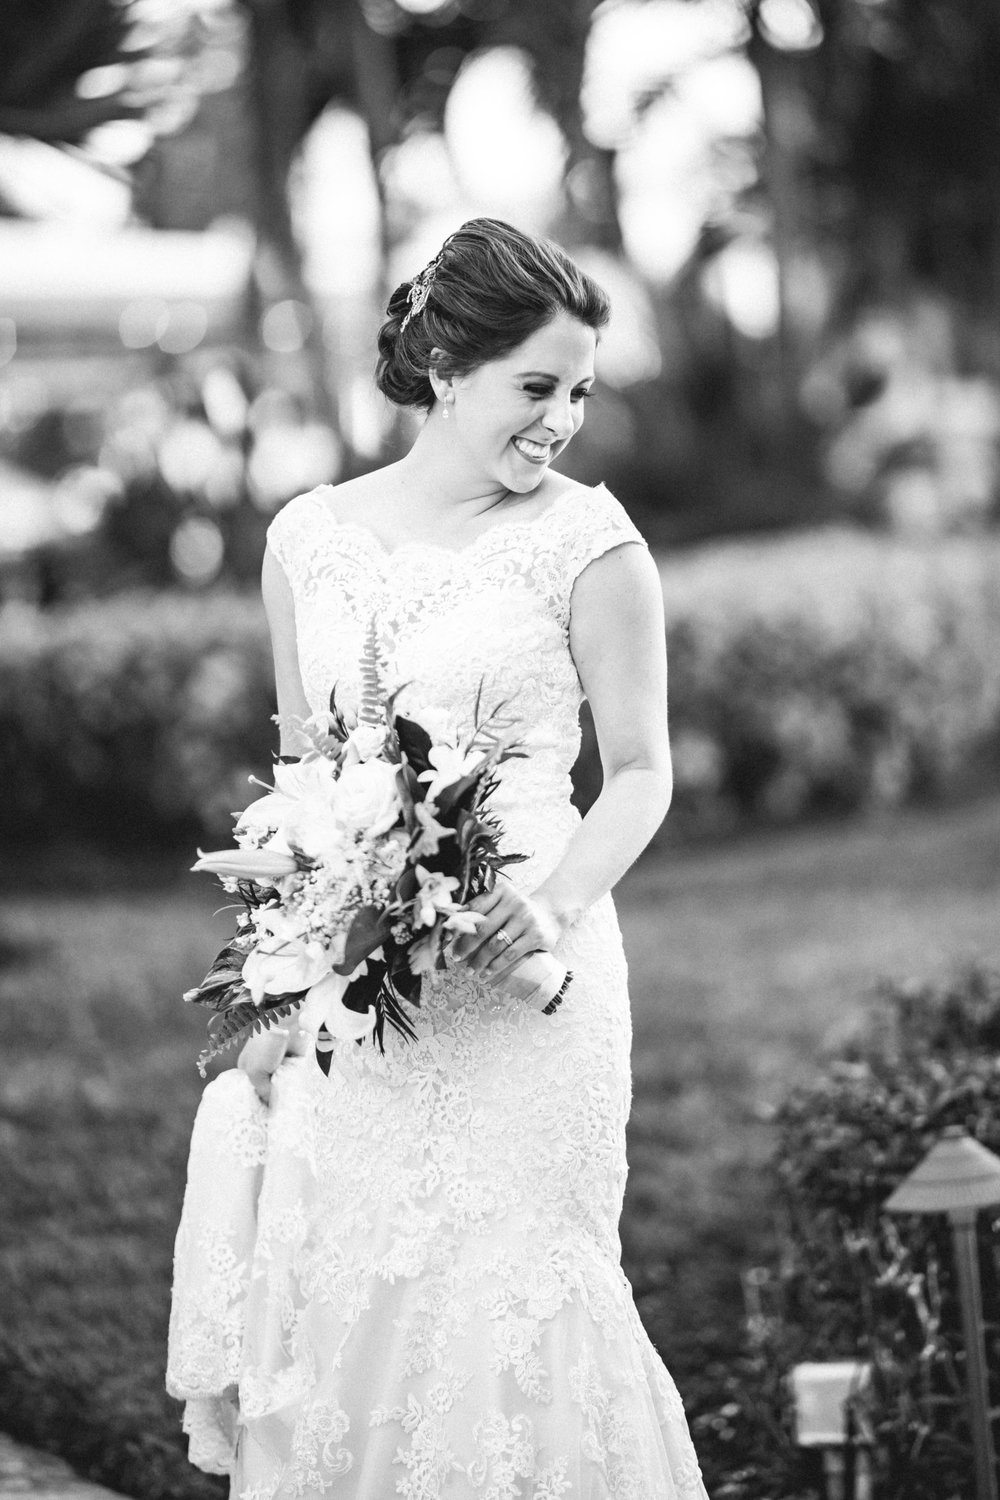 Matt+Steeves+Photography+Casa+Ybel+Weddings+Floral+Artistry+Sanibel_0140A.jpg